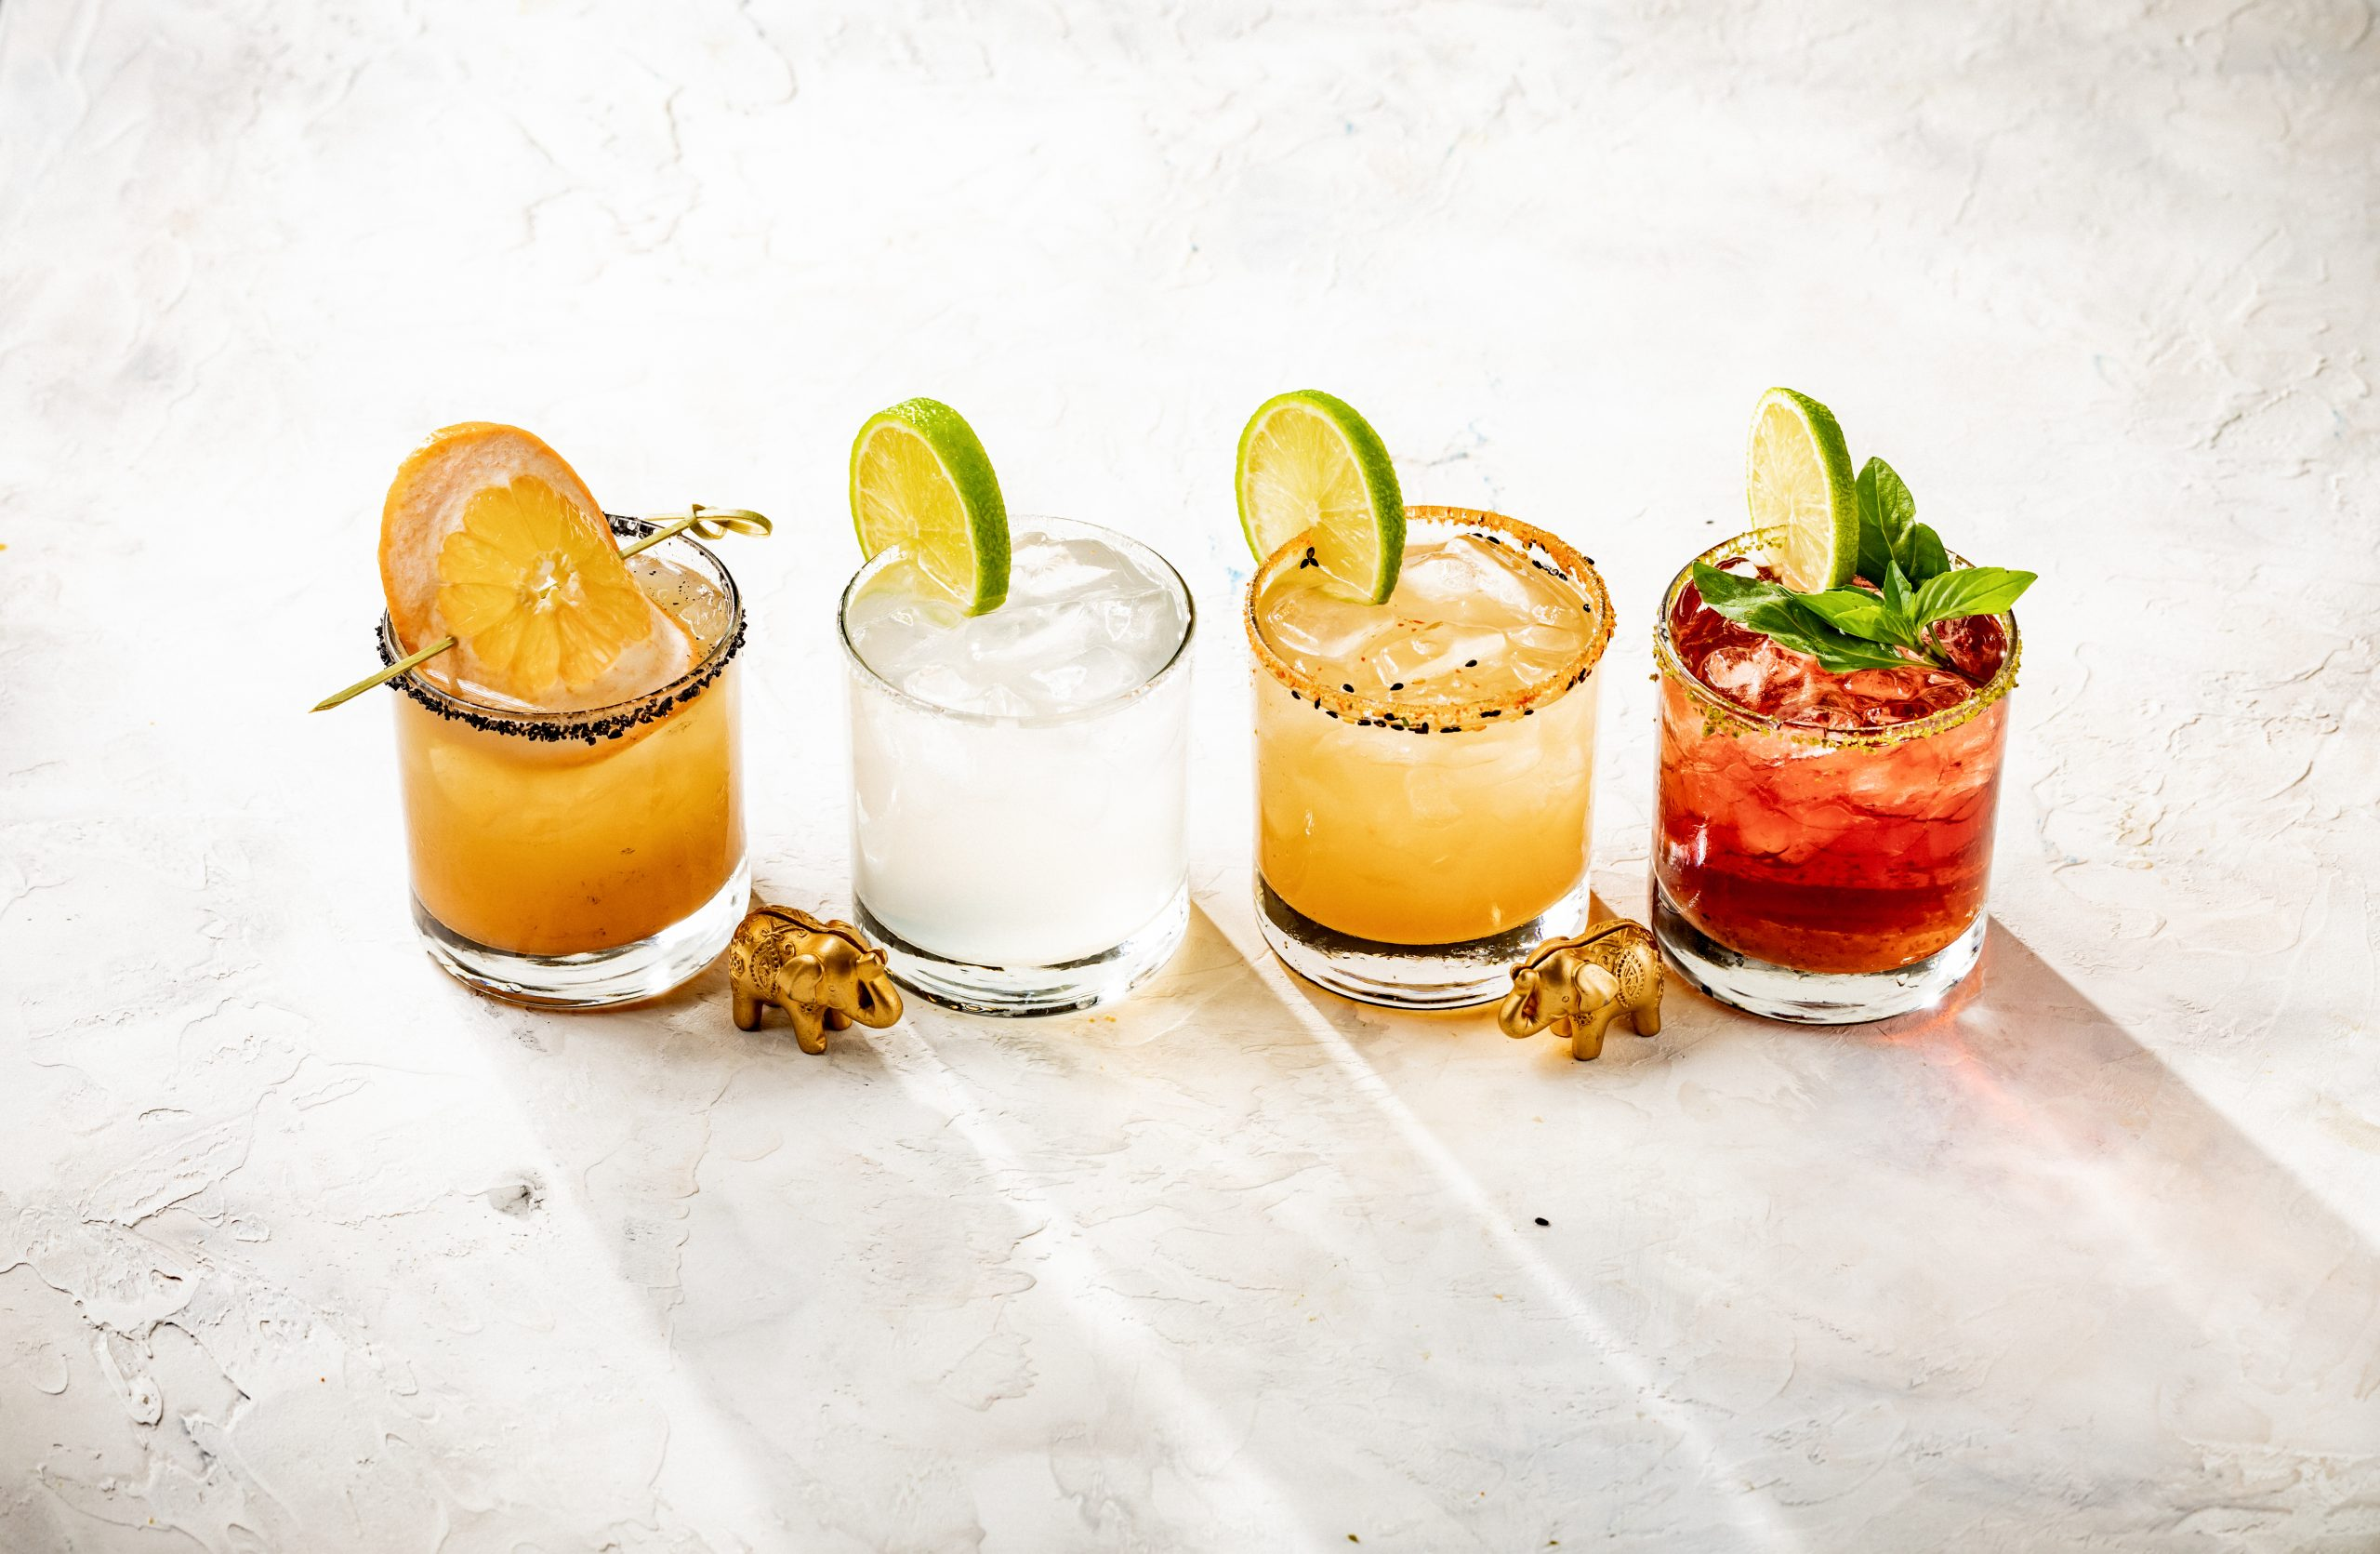 four different colored drinks in glasses with orange and lime wedge garnishes. two elephant trinkets on the table with the glasses.